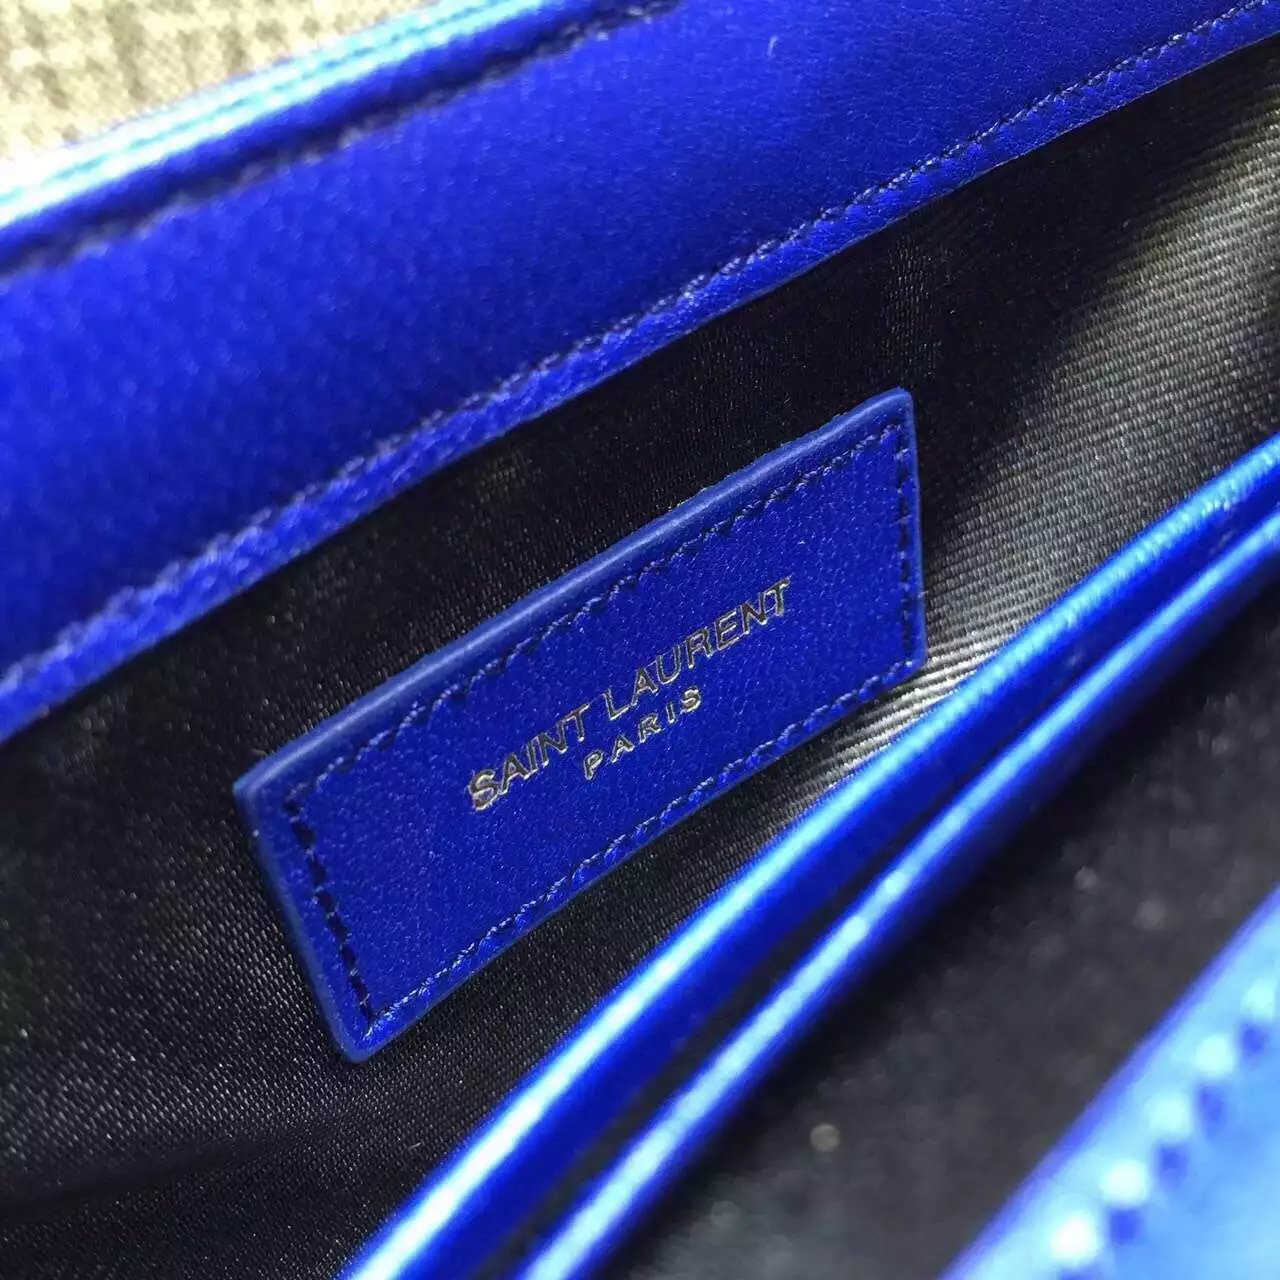 2015 Cheap YSL Outsale with Free Shipping-Saint Laurent Classic Baby Monogram Satchel in Electric Blue Matelasse Leather with Gold Hardware